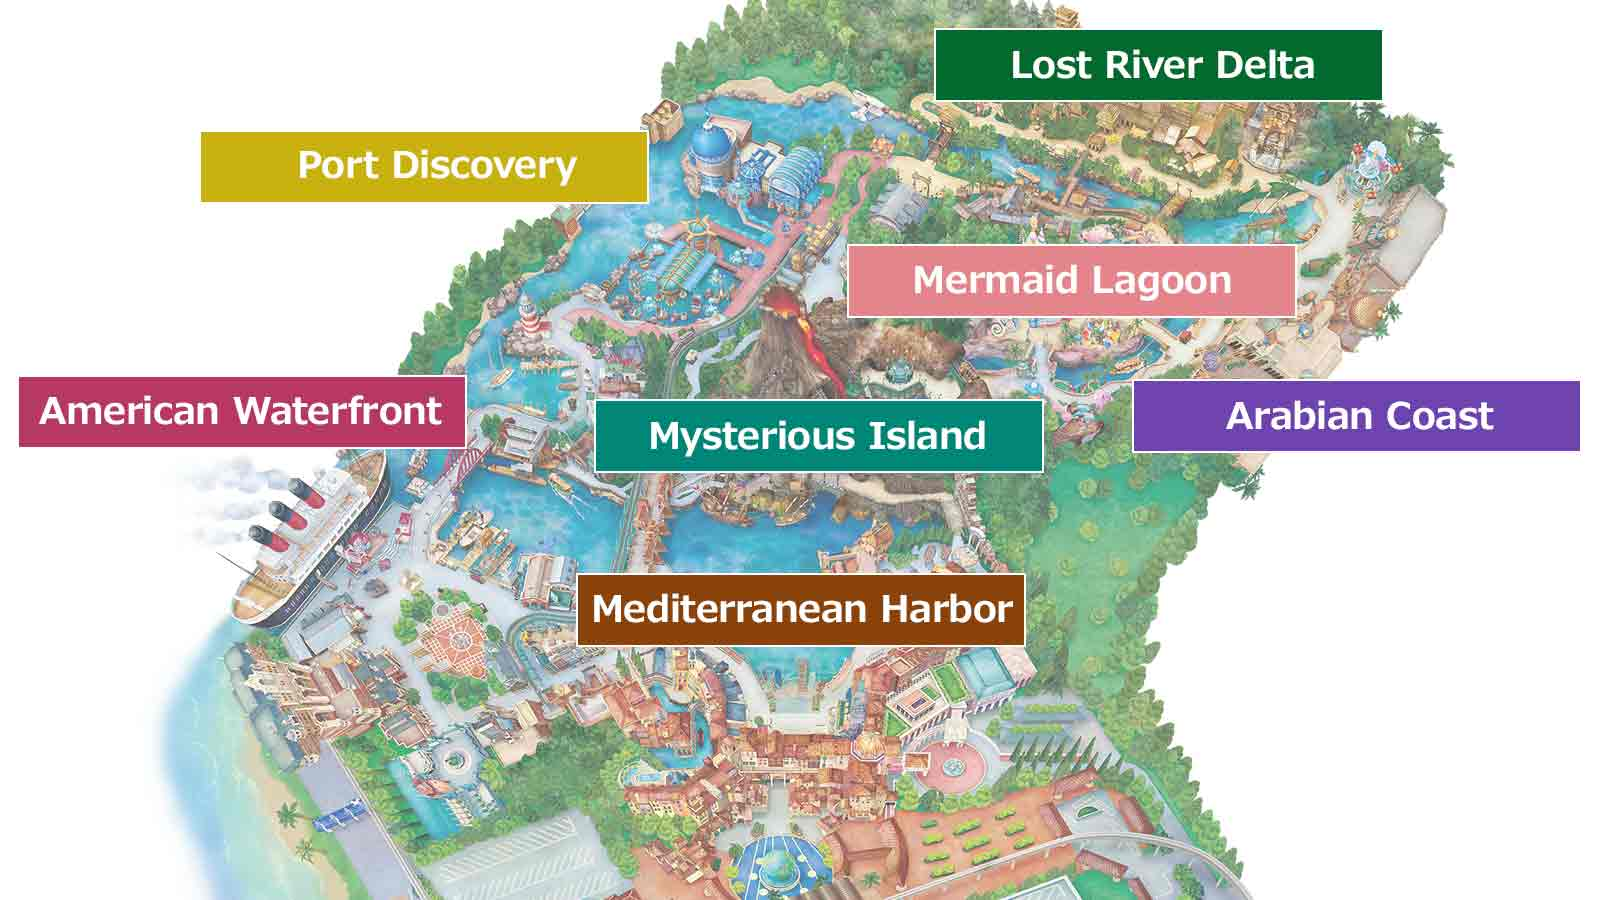 photograph about Printable Disneyland Maps identify Formal]MapTokyo DisneySea